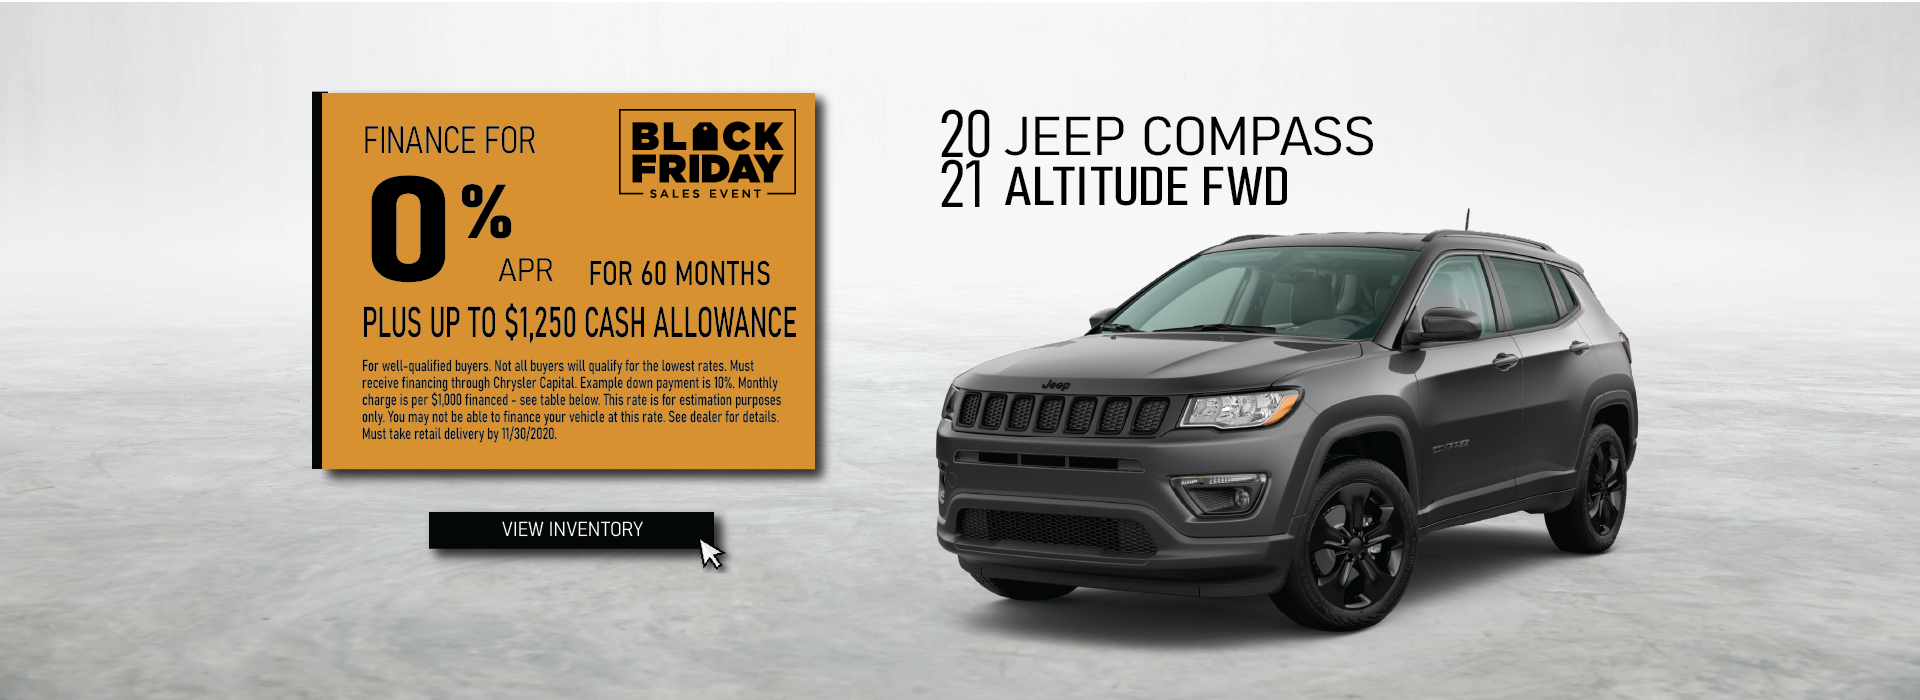 Cullman – Jeep Compass November